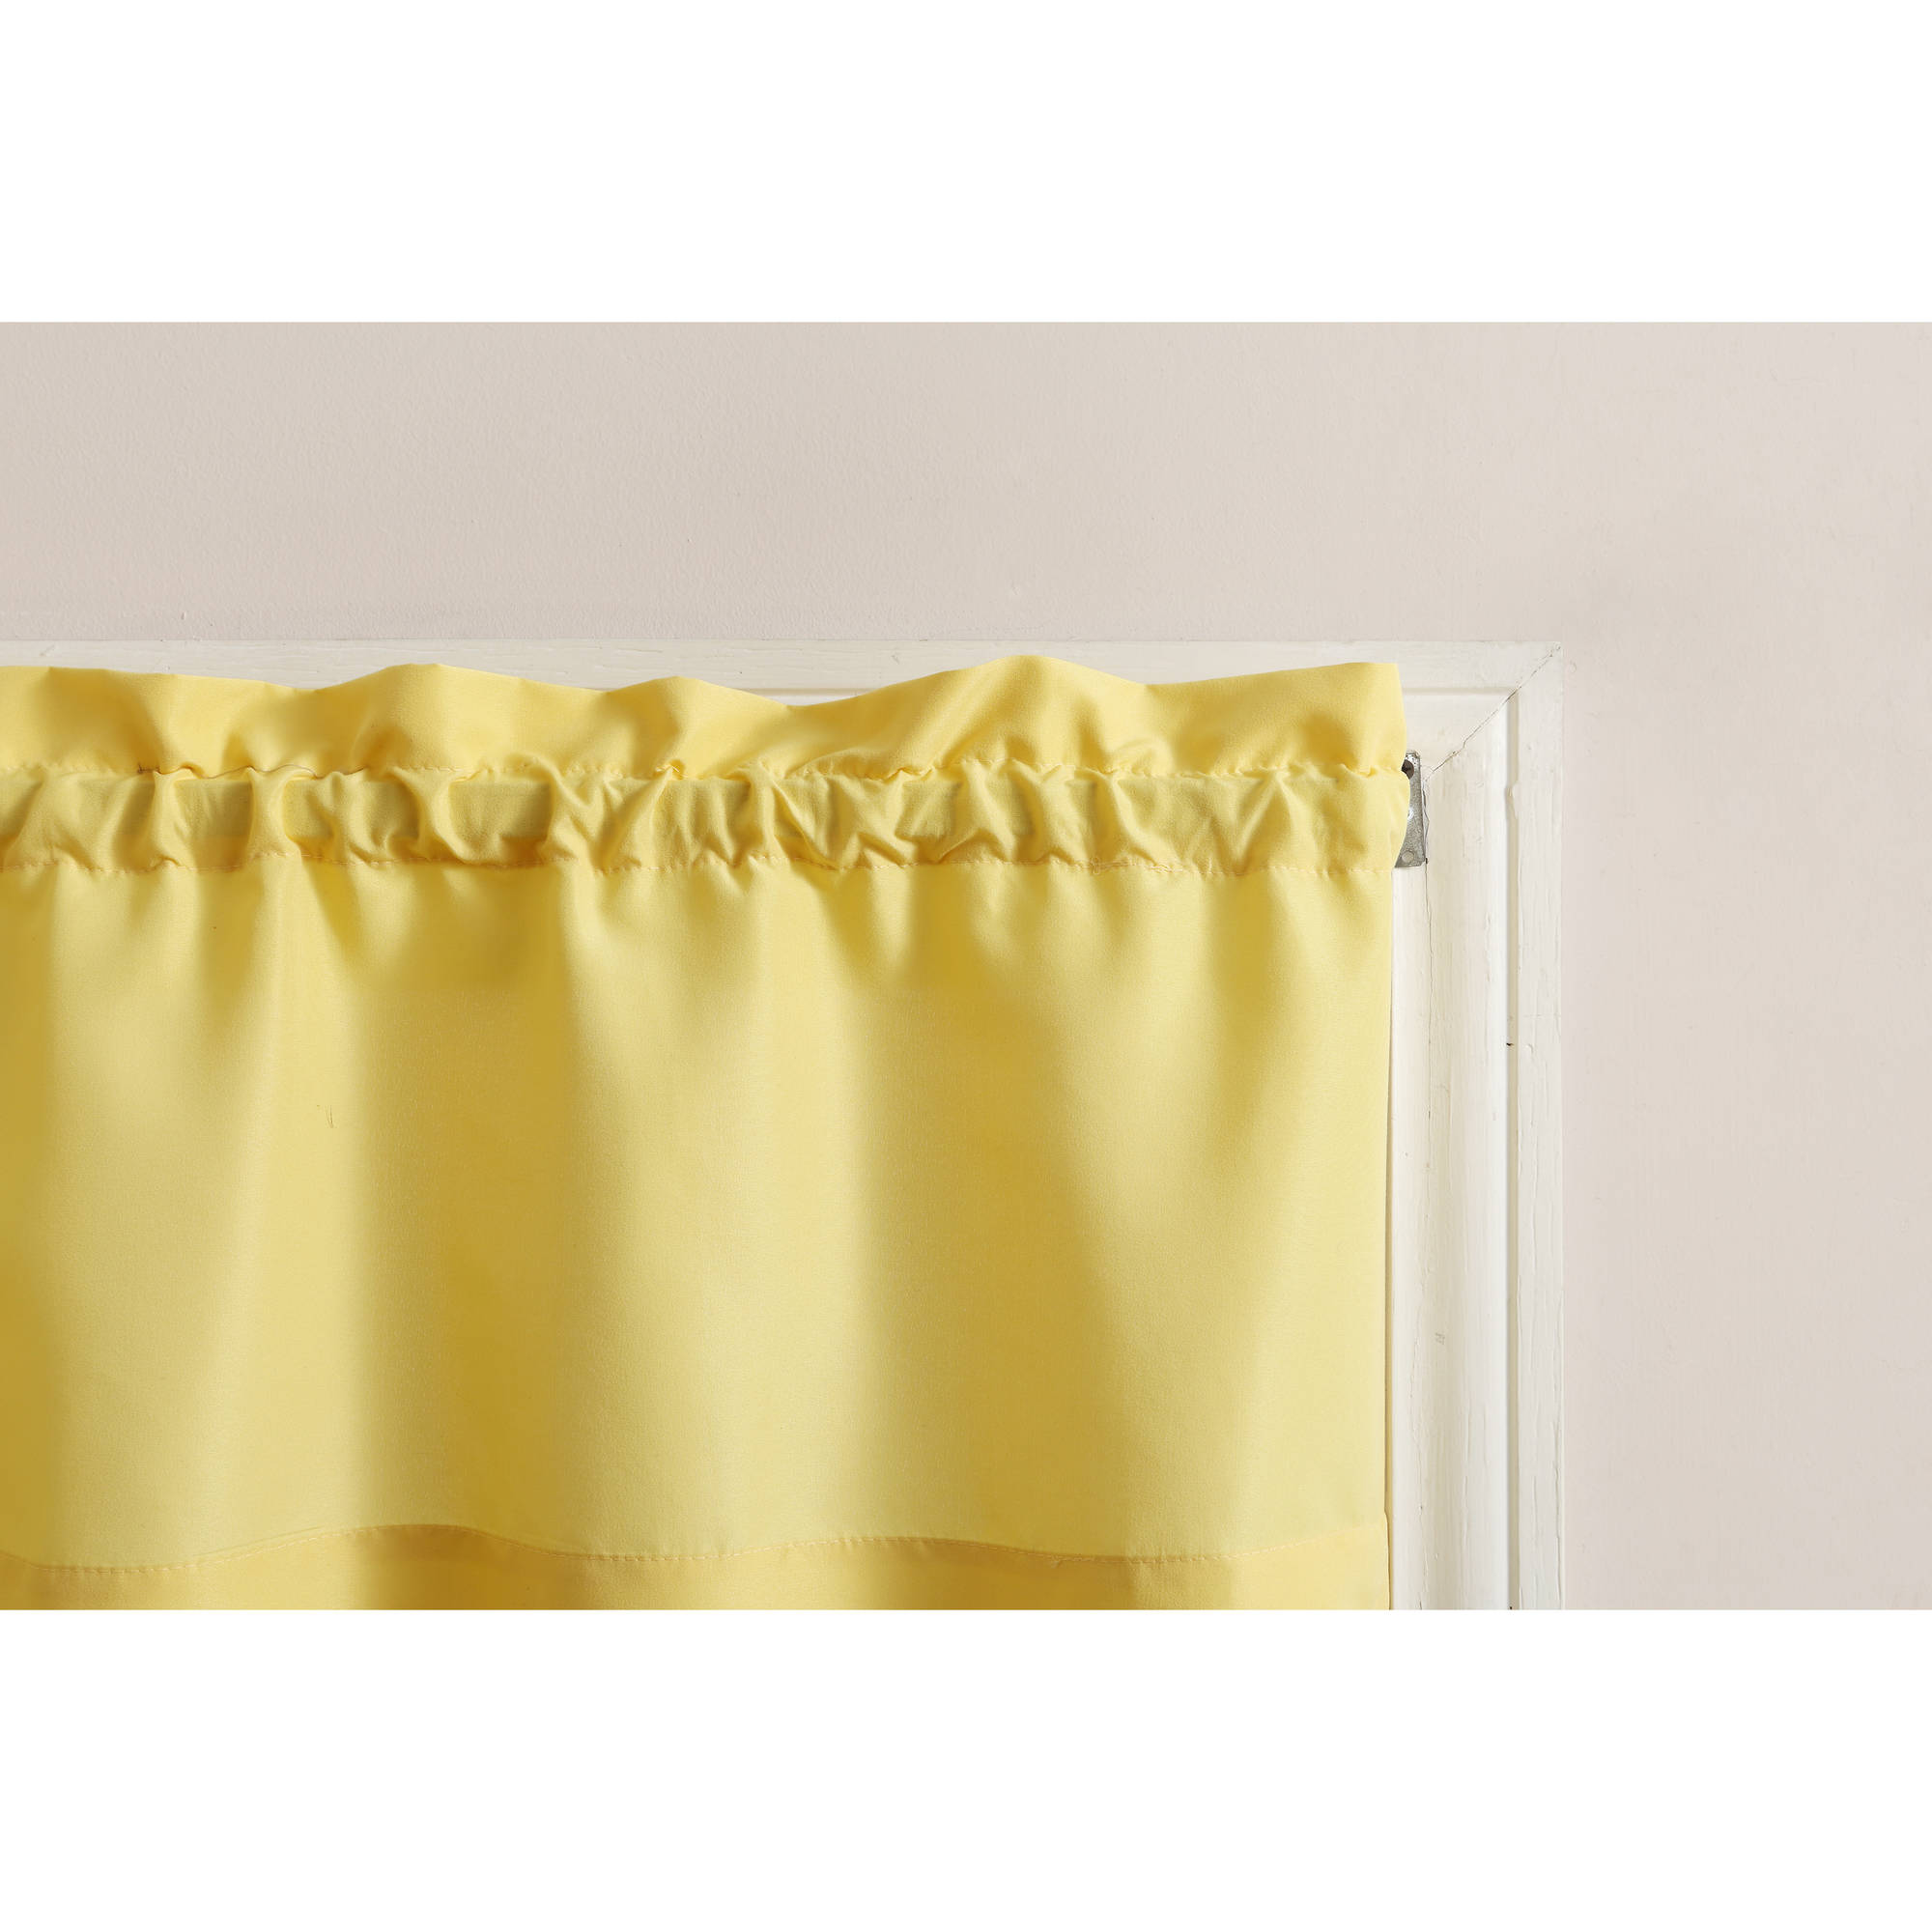 curtain and your picture chevron curtains for ideas valance marvelous home gray throughout cozy yellow inspiration unique u